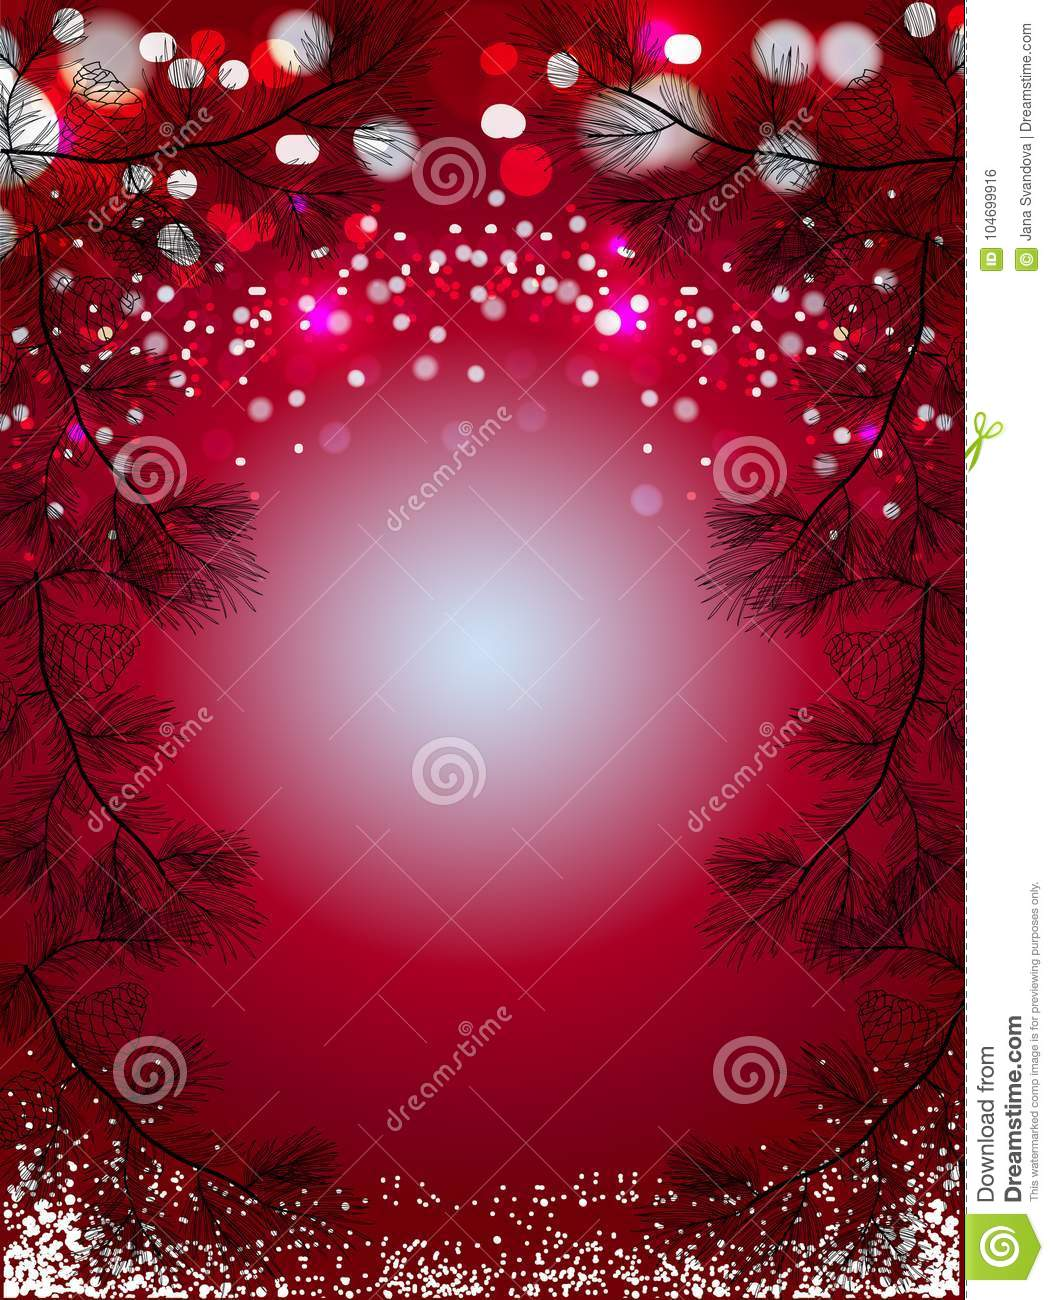 red christmas background snow black pine spruces sparkling winter holidays vector wallpaper red christmas background 104699916